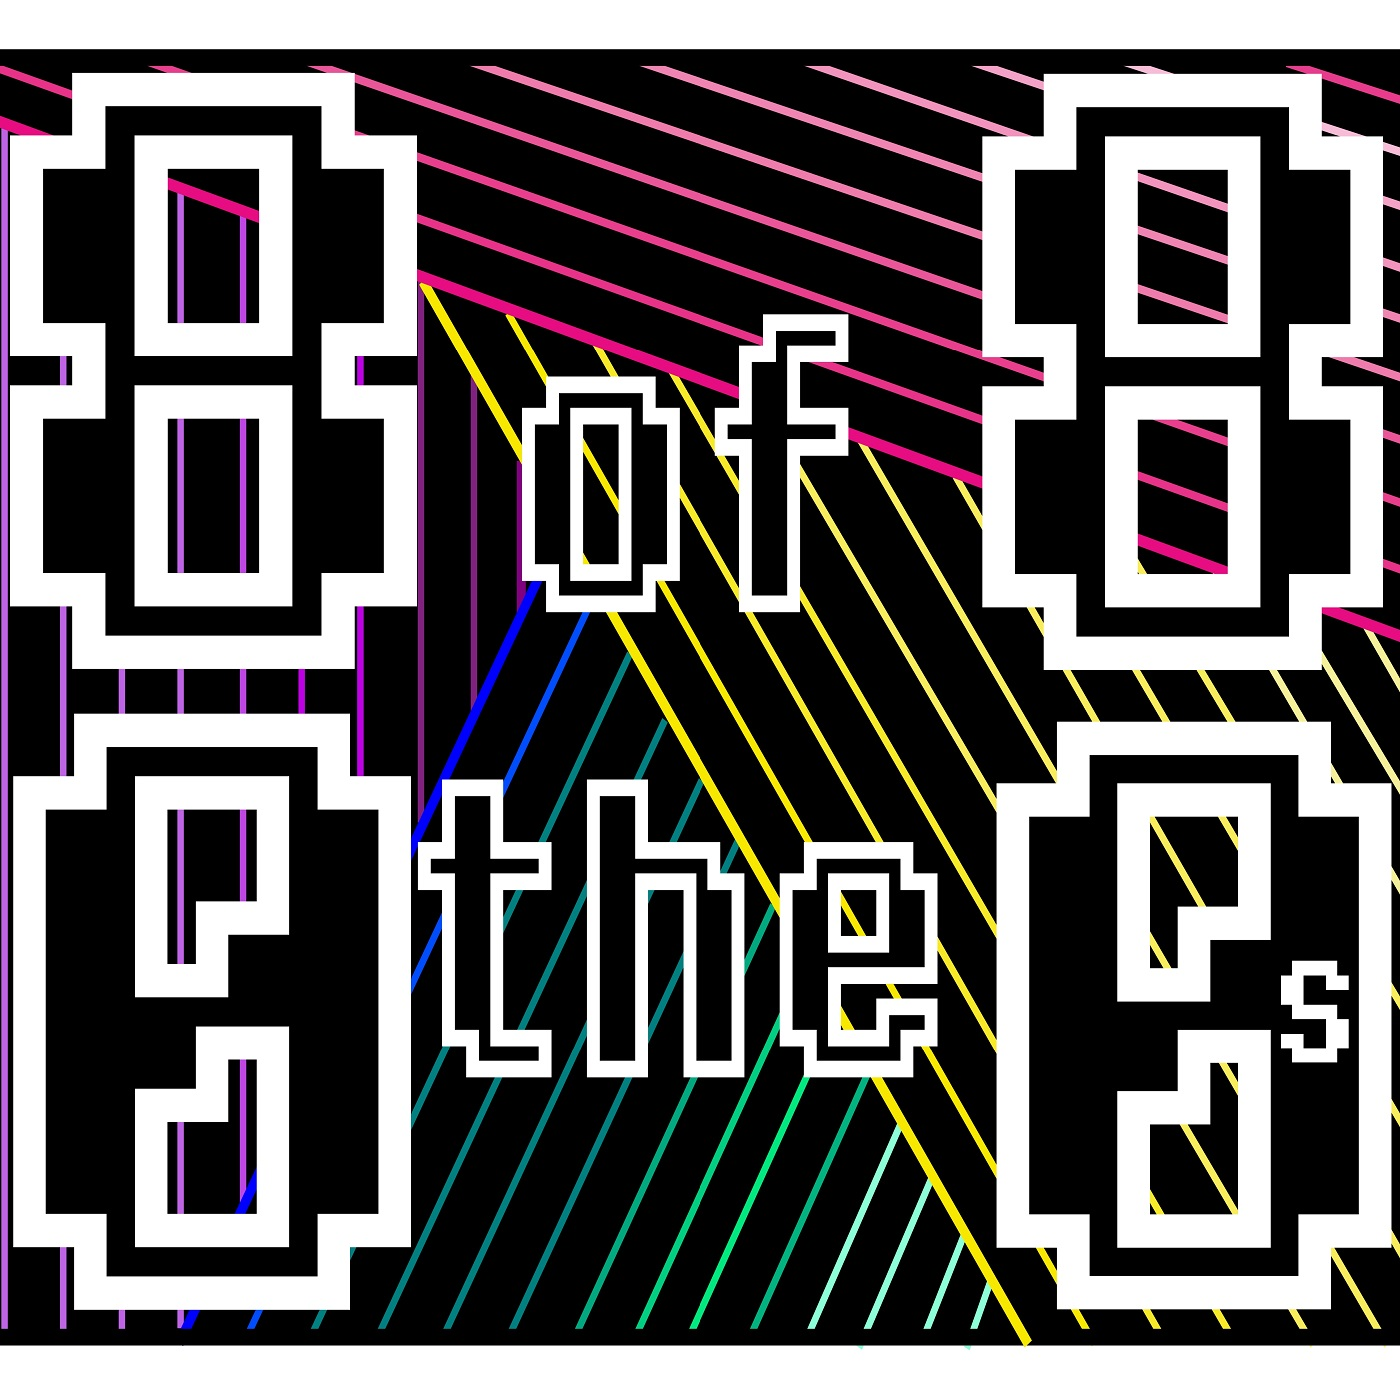 80 of the '80s Music Podcast | Listen via Stitcher for Podcasts